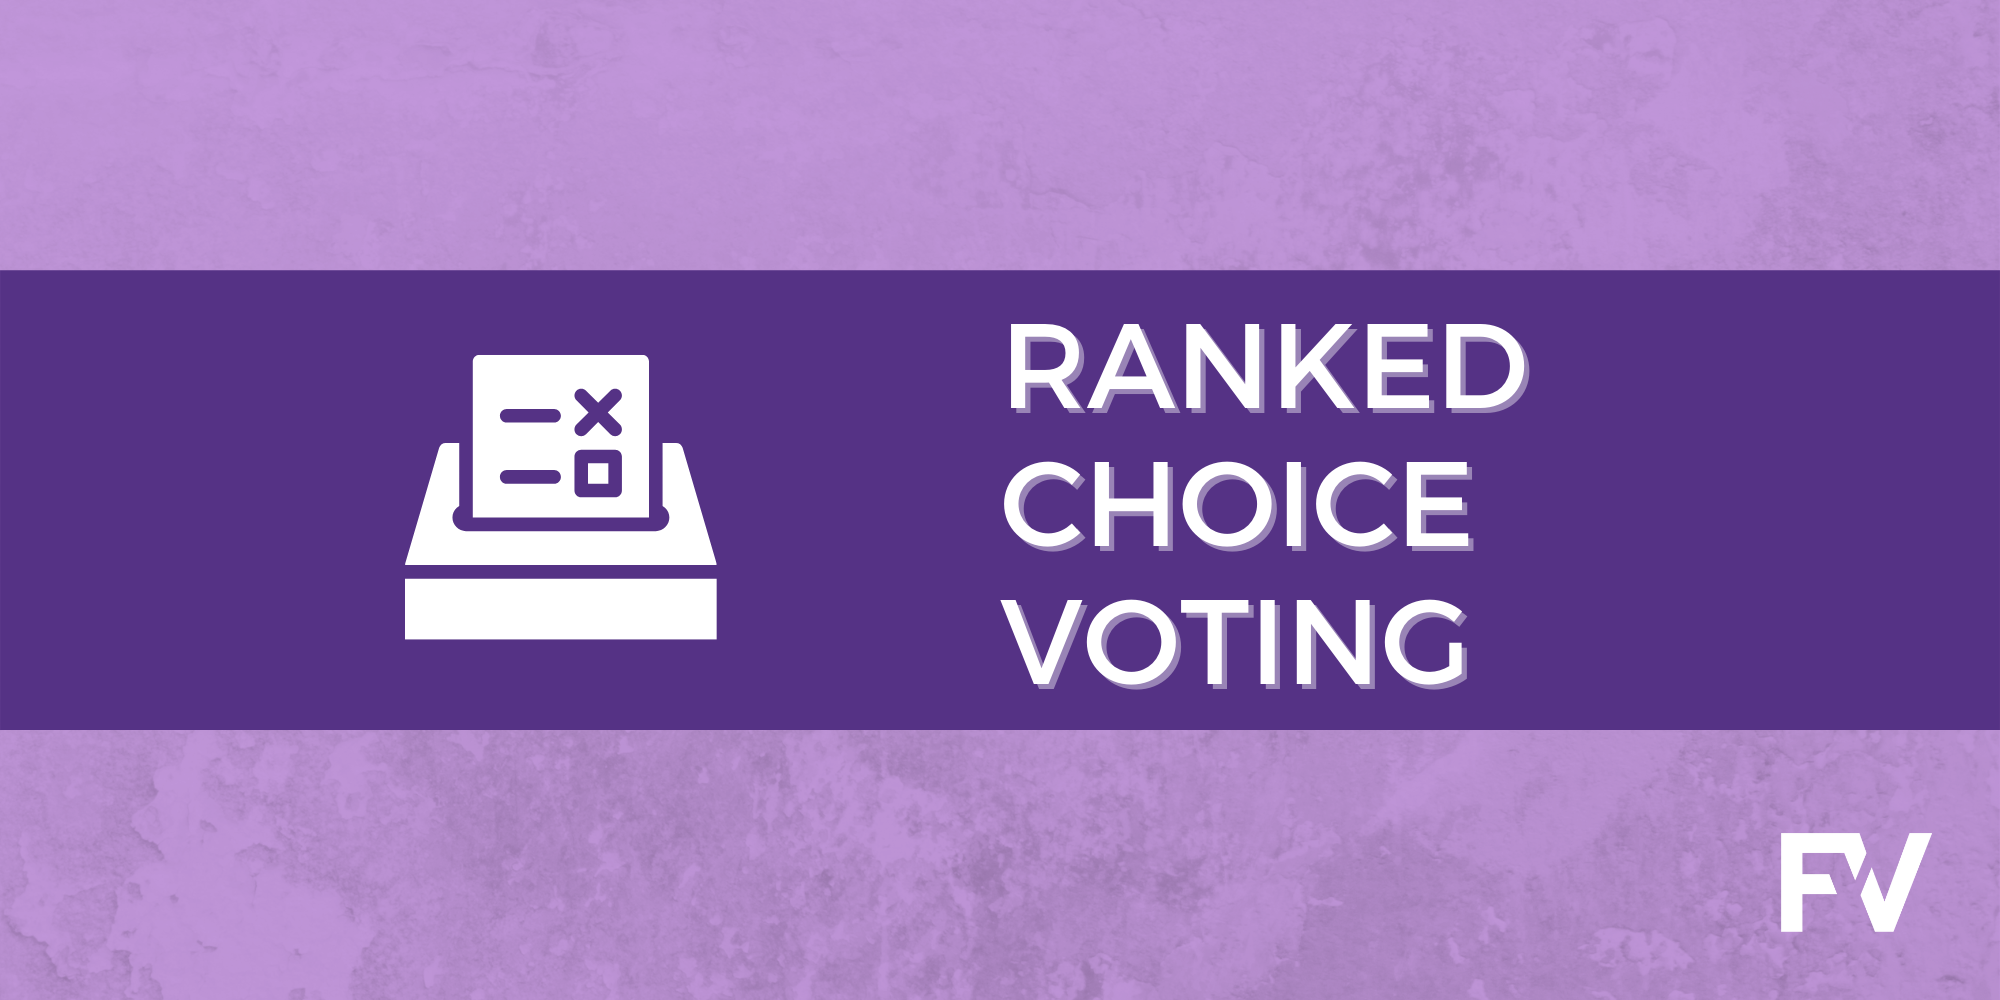 Constitutional Scholars Across the Political Spectrum Back Ranked Choice Voting